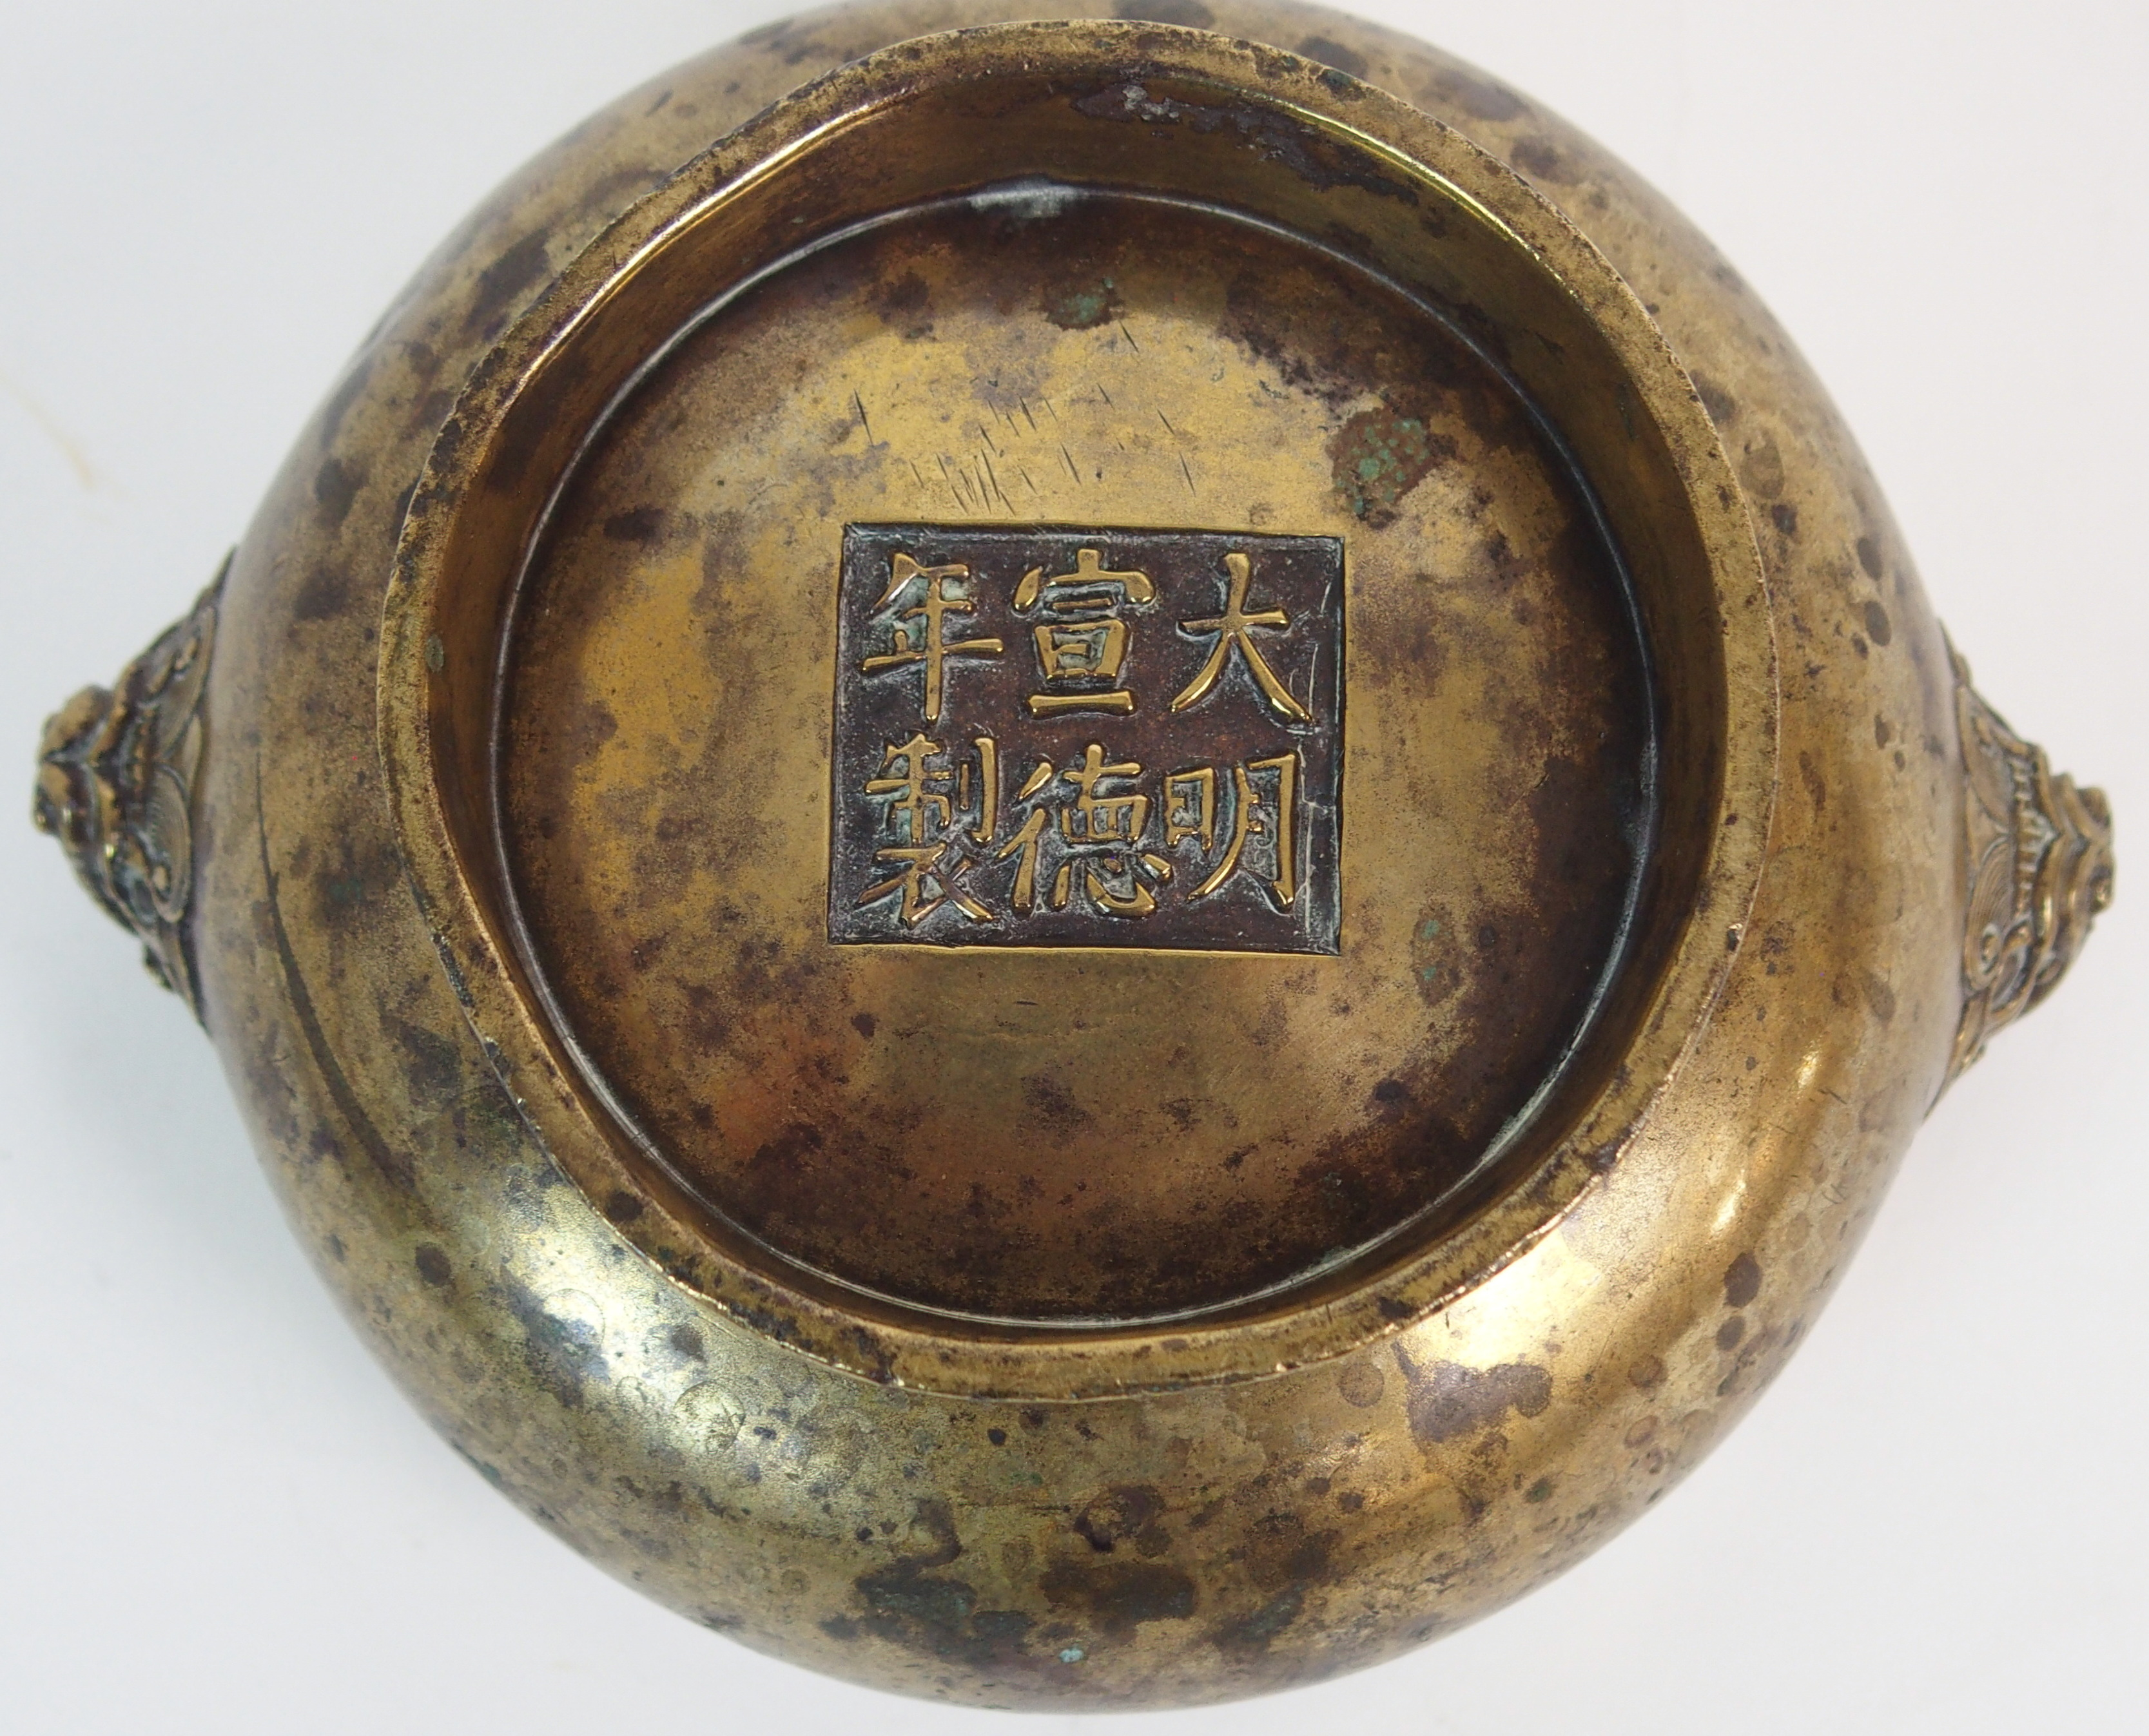 Lot 48 - A CHINESE BRASS CENSER the bulbous body cast with grotesque mask handles, six character mark,760